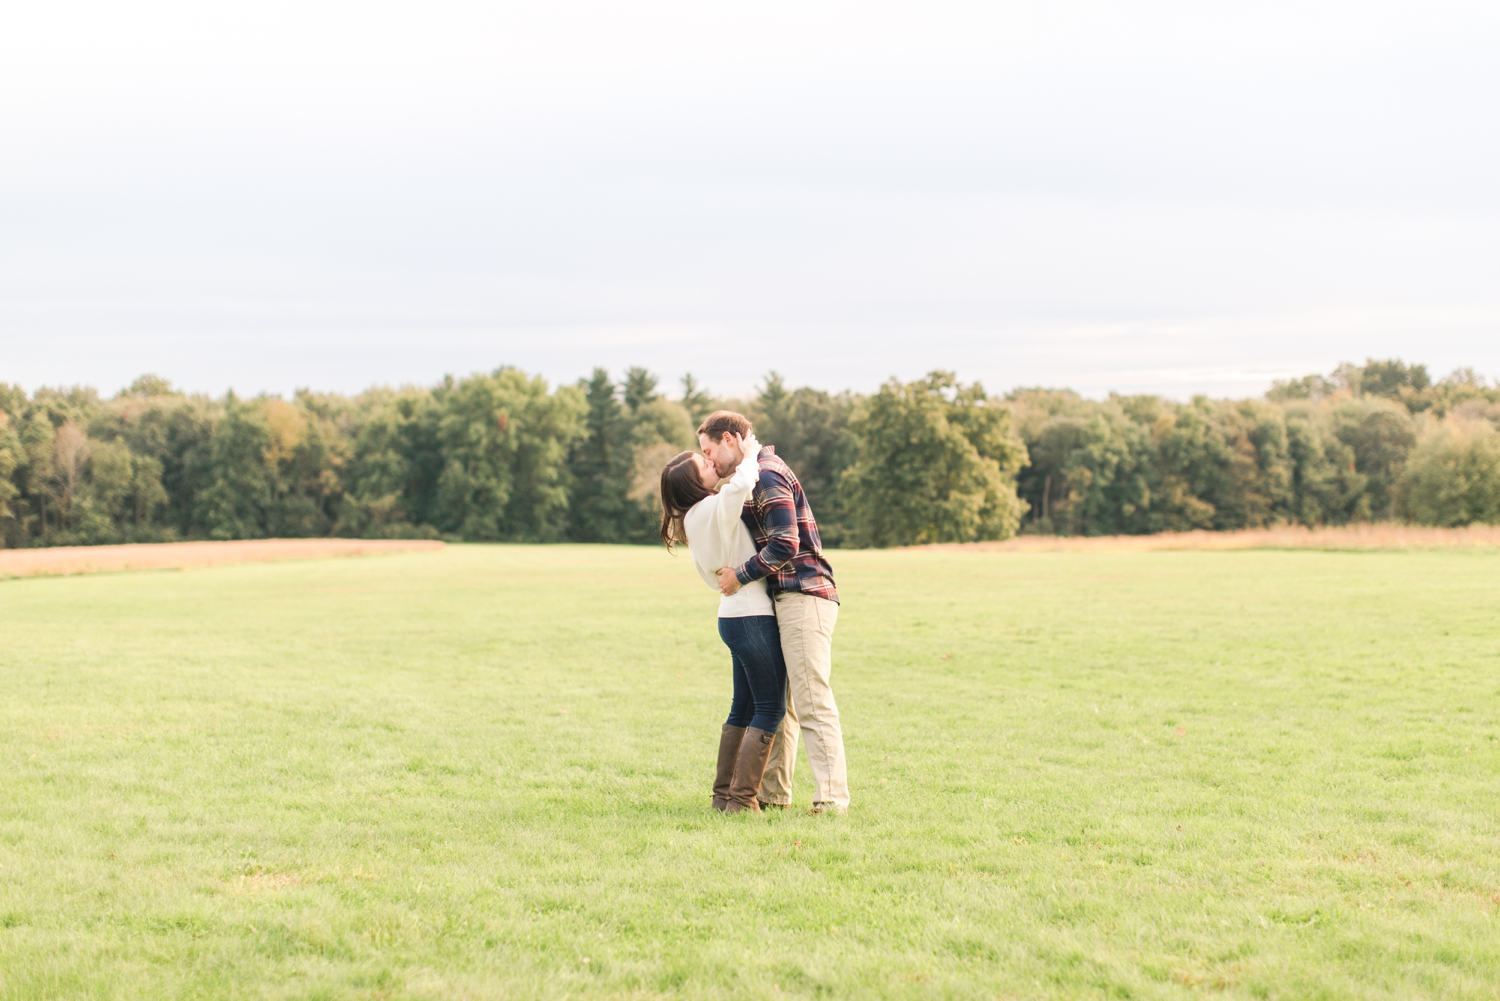 waveny-park-engagement-session-new-canaan-connecticut-wedding-photographer-sw-shaina-lee-photography-photo